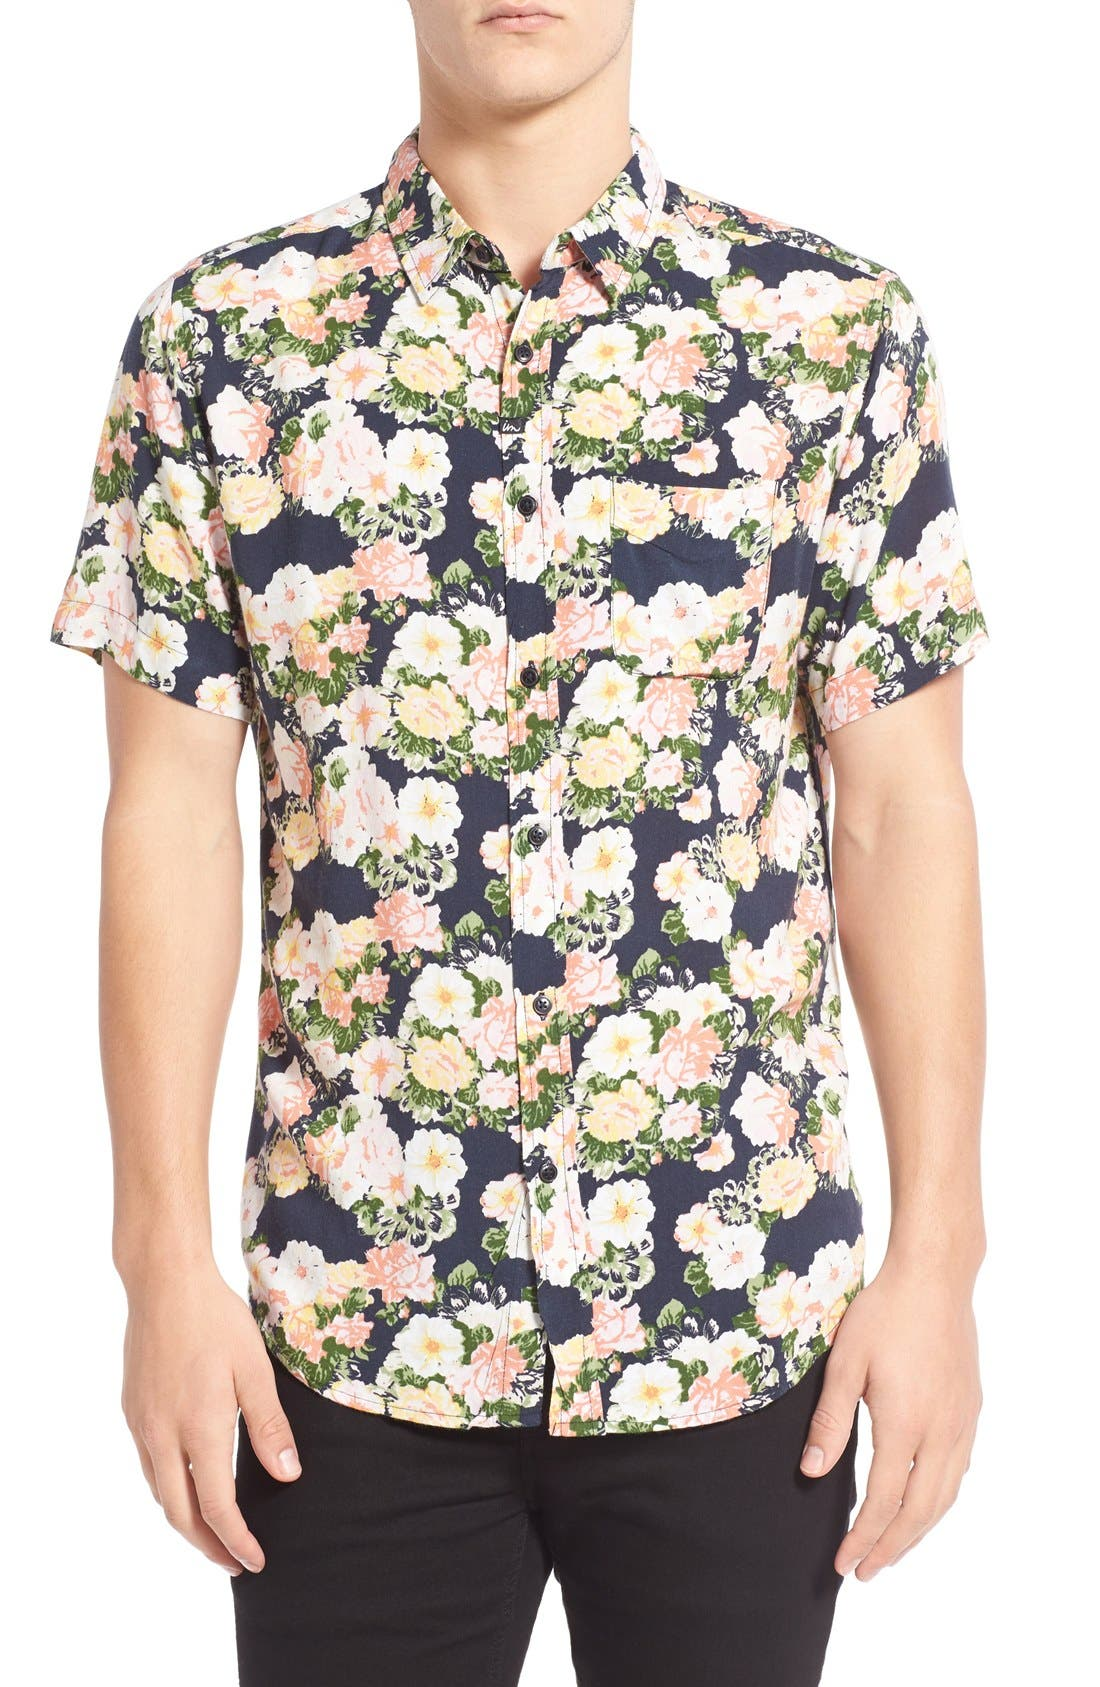 IMPERIAL MOTION 'Vacay' Floral Print Short Sleeve Woven